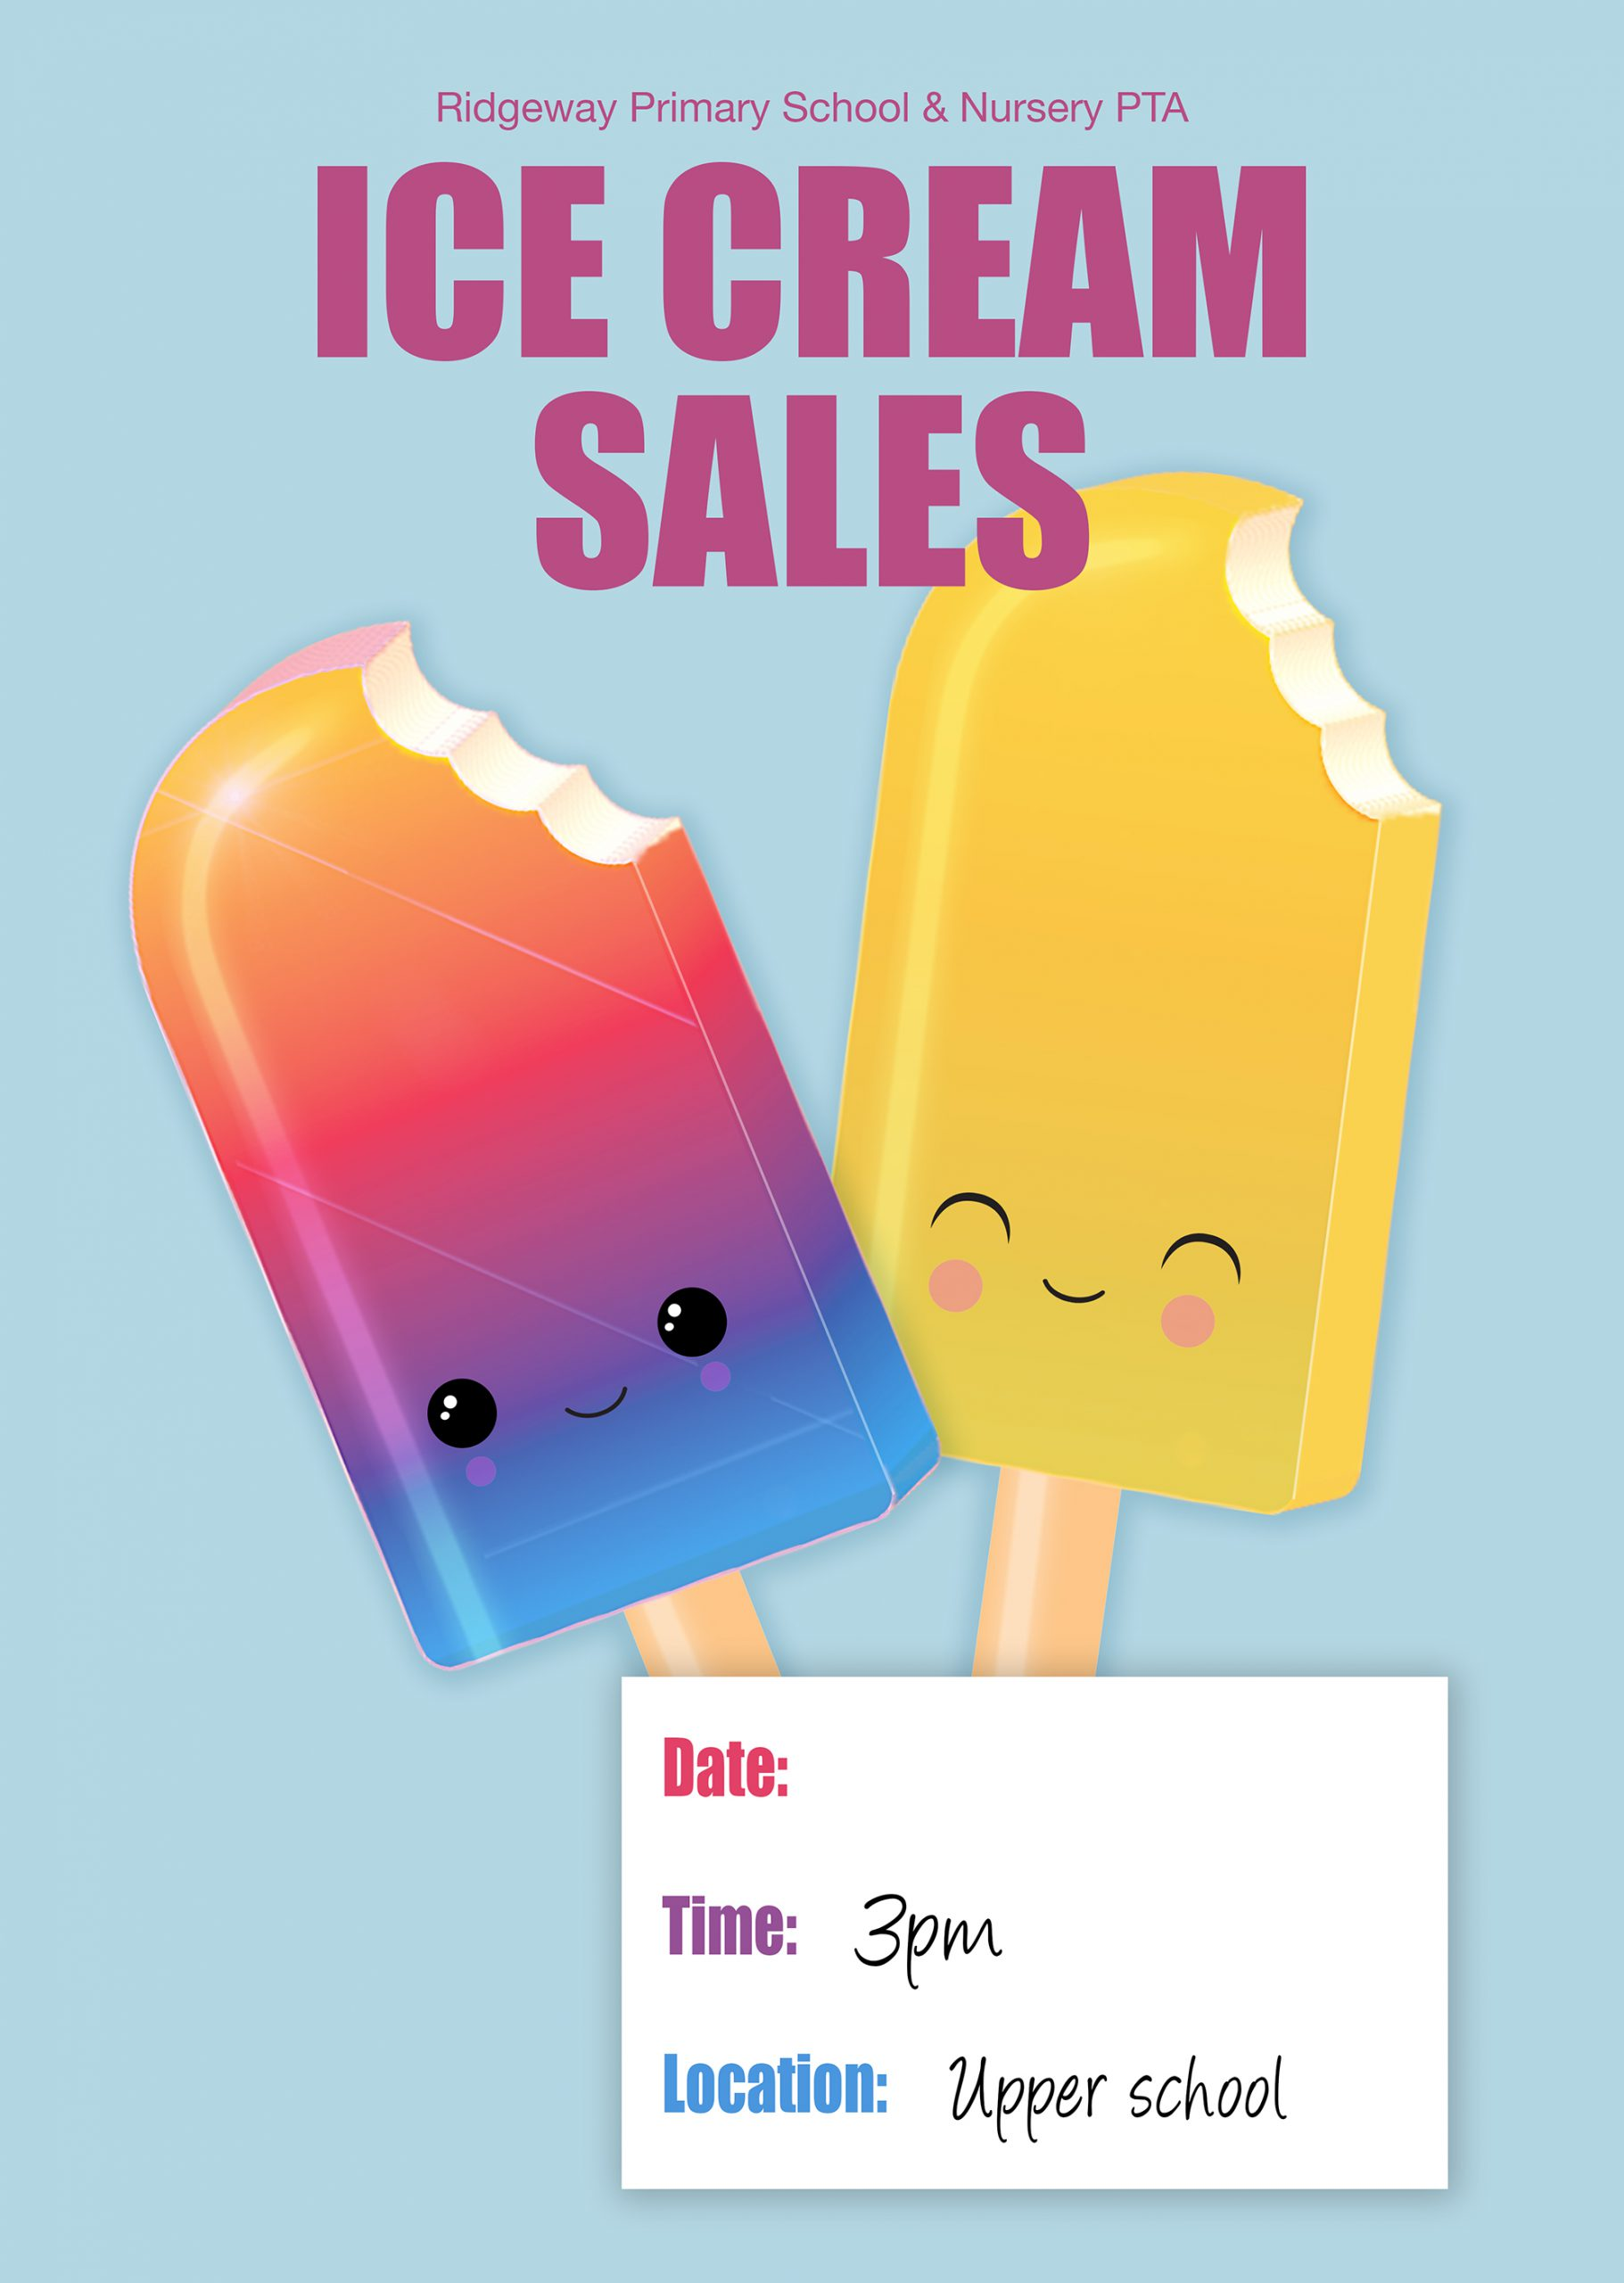 Ice cream sales poster